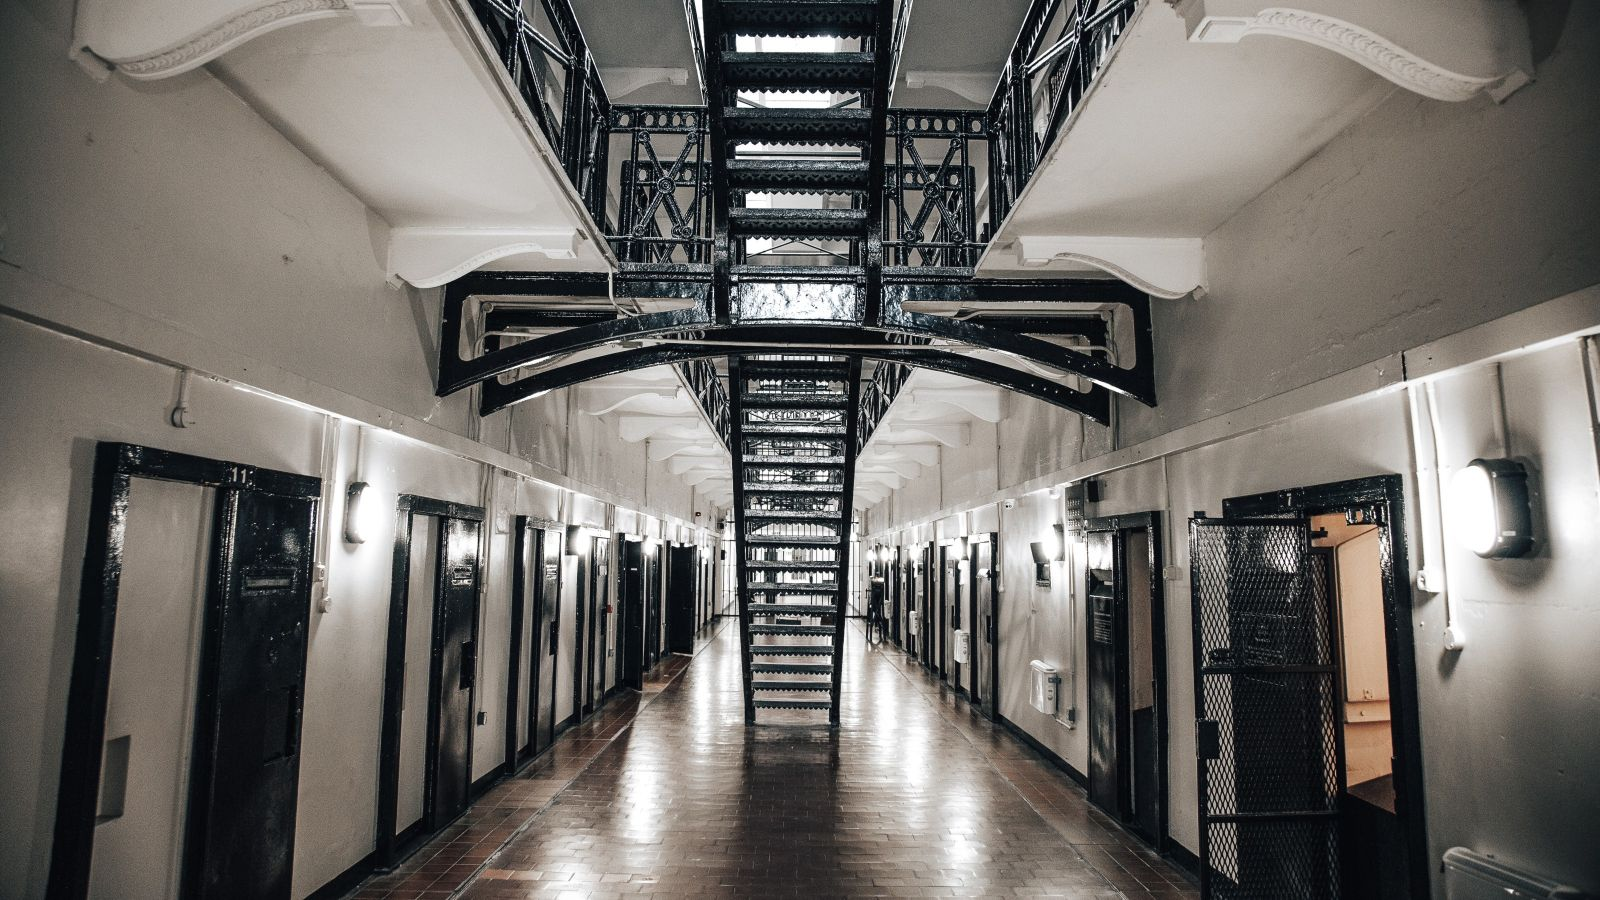 Prison corridor and staircase